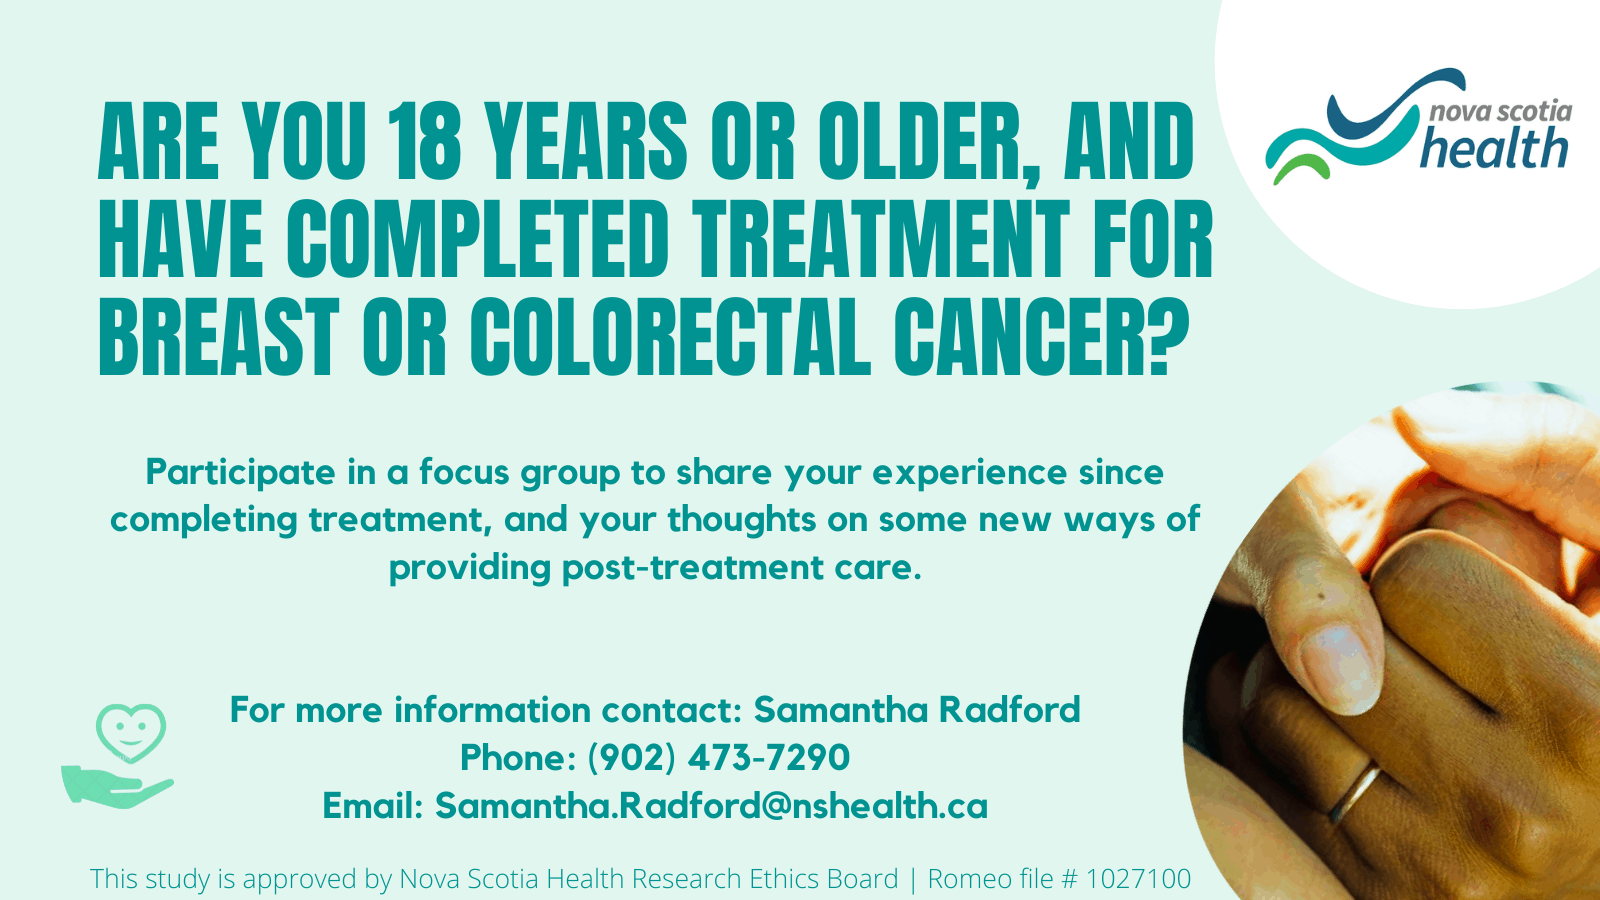 Are you 18 years or older, and have completed treatment for breast or colorectal cancer? Participate in a focus group to share your experience since completing treatment, and your thoughts on some new ways of providing post-treatment care.